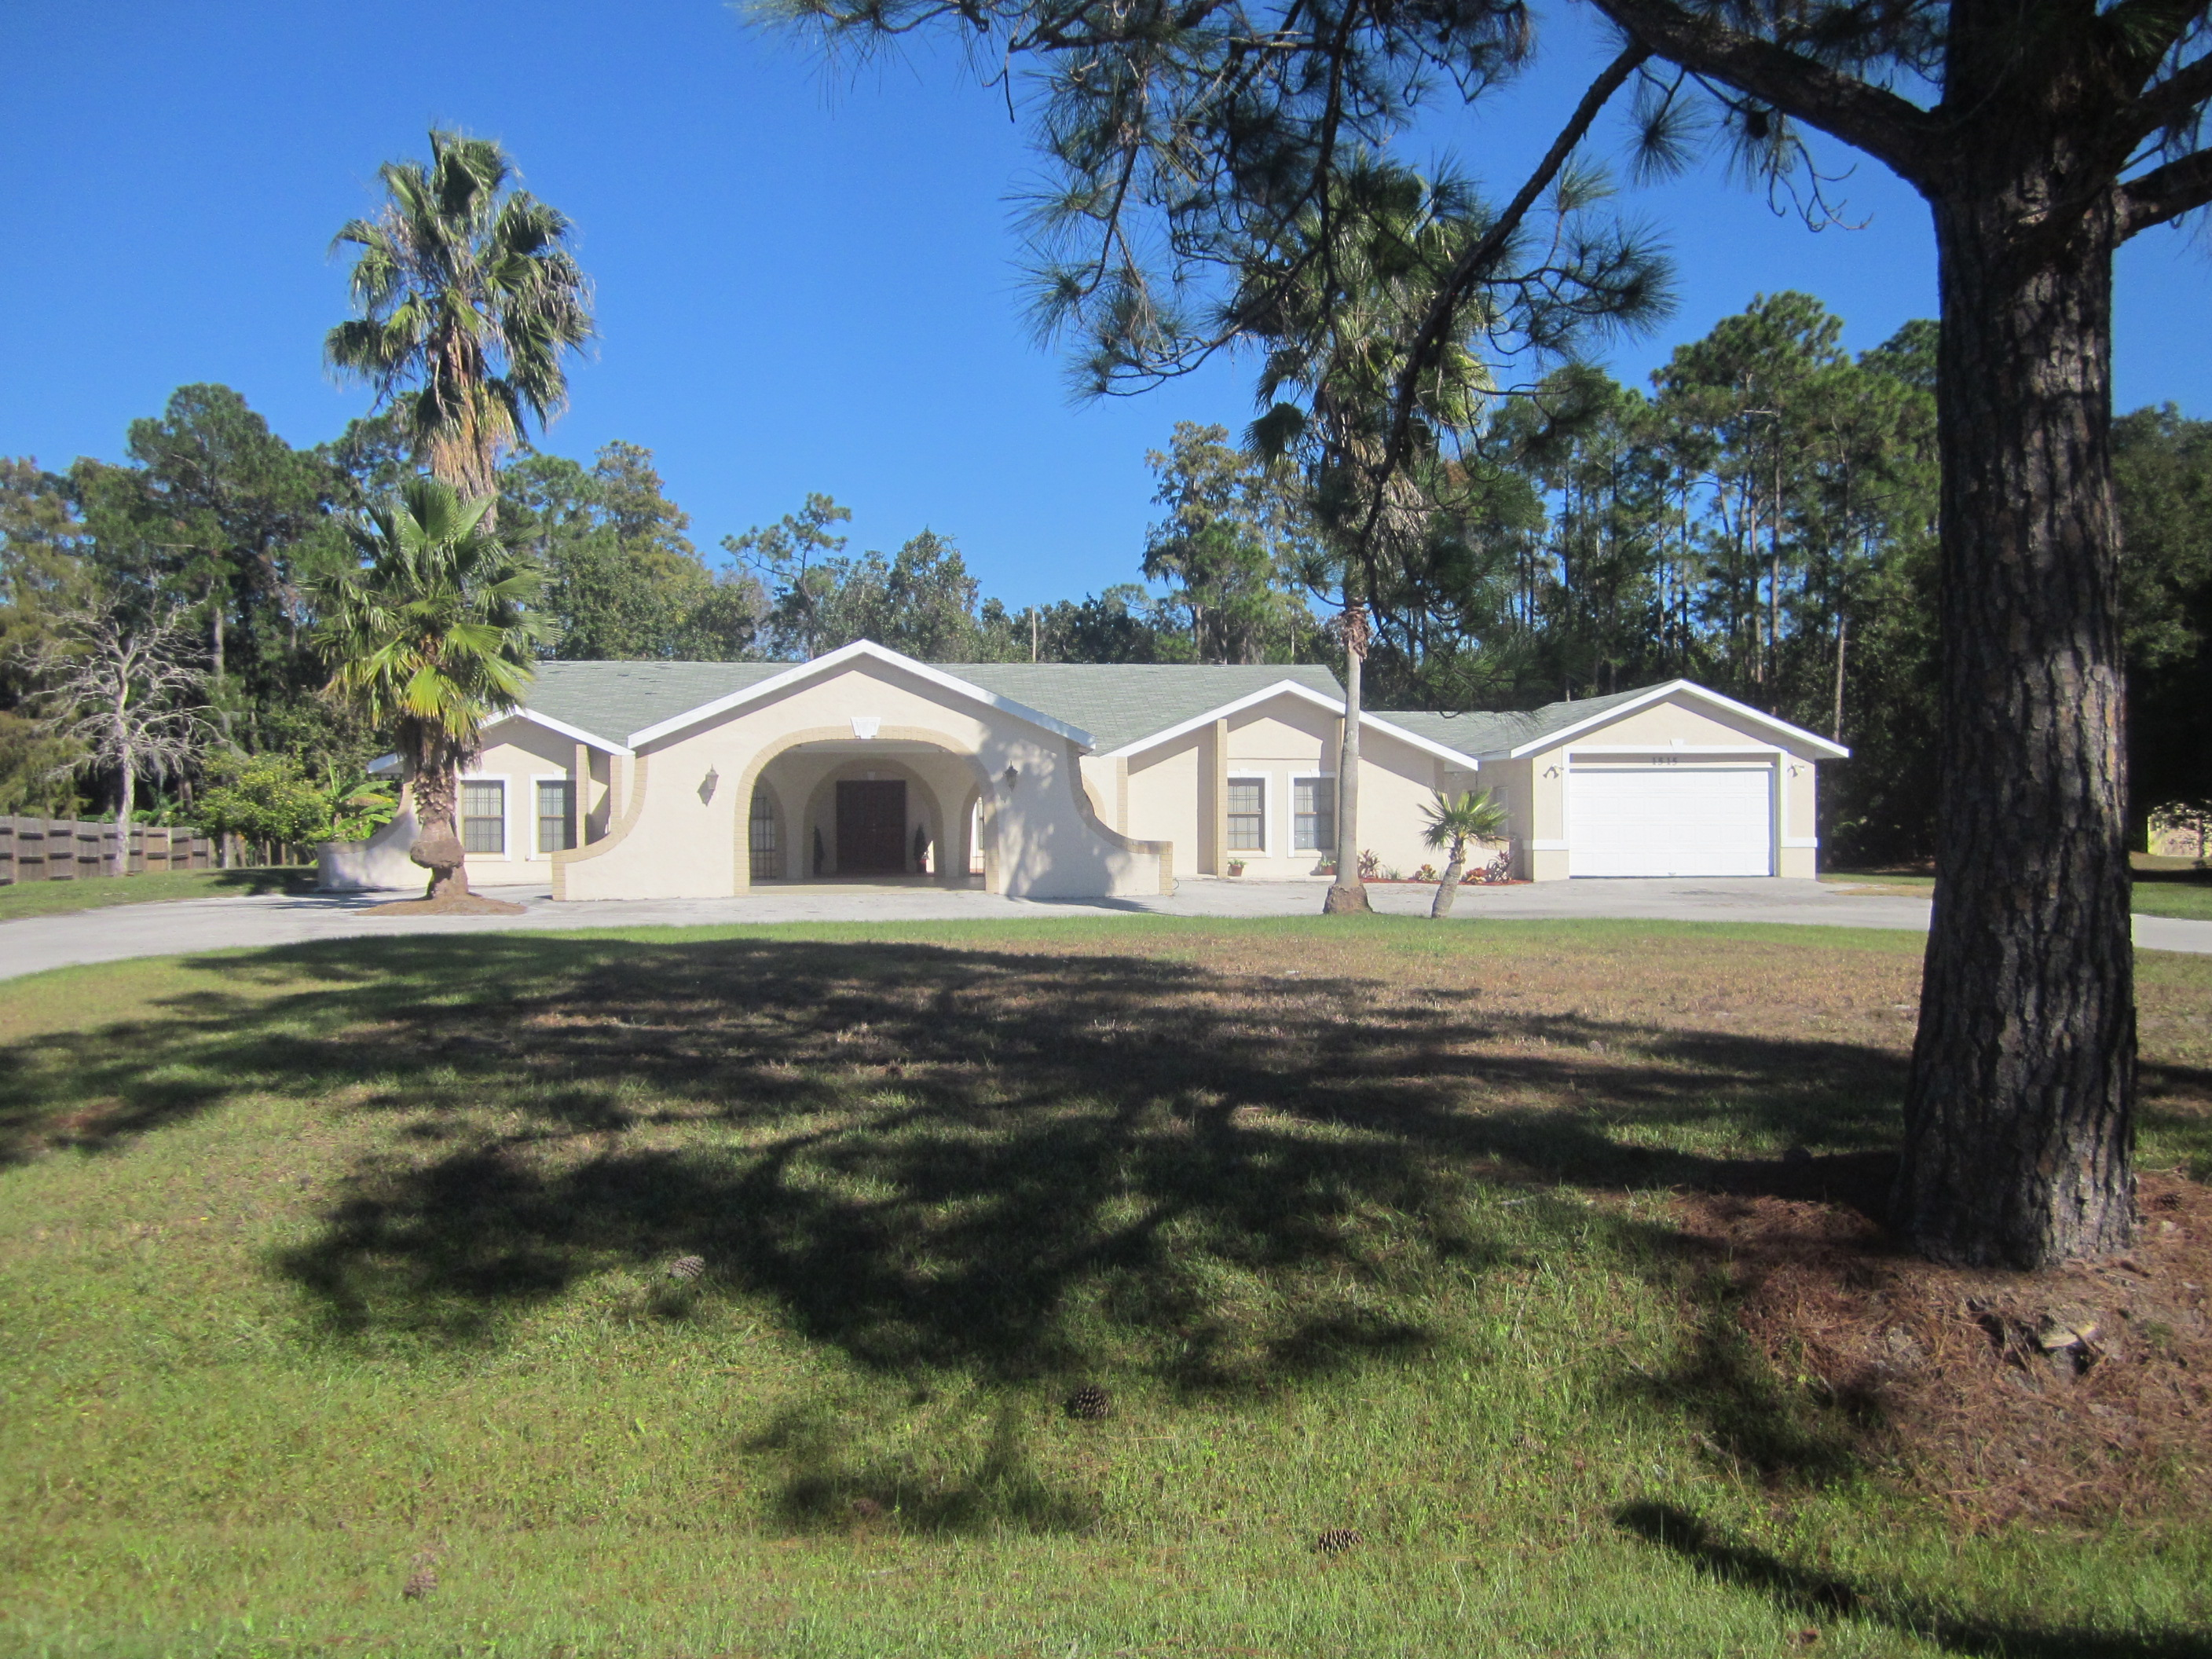 33848 foreclosures – 1515 E Wind Blvd, Kissimmee, FL 34746